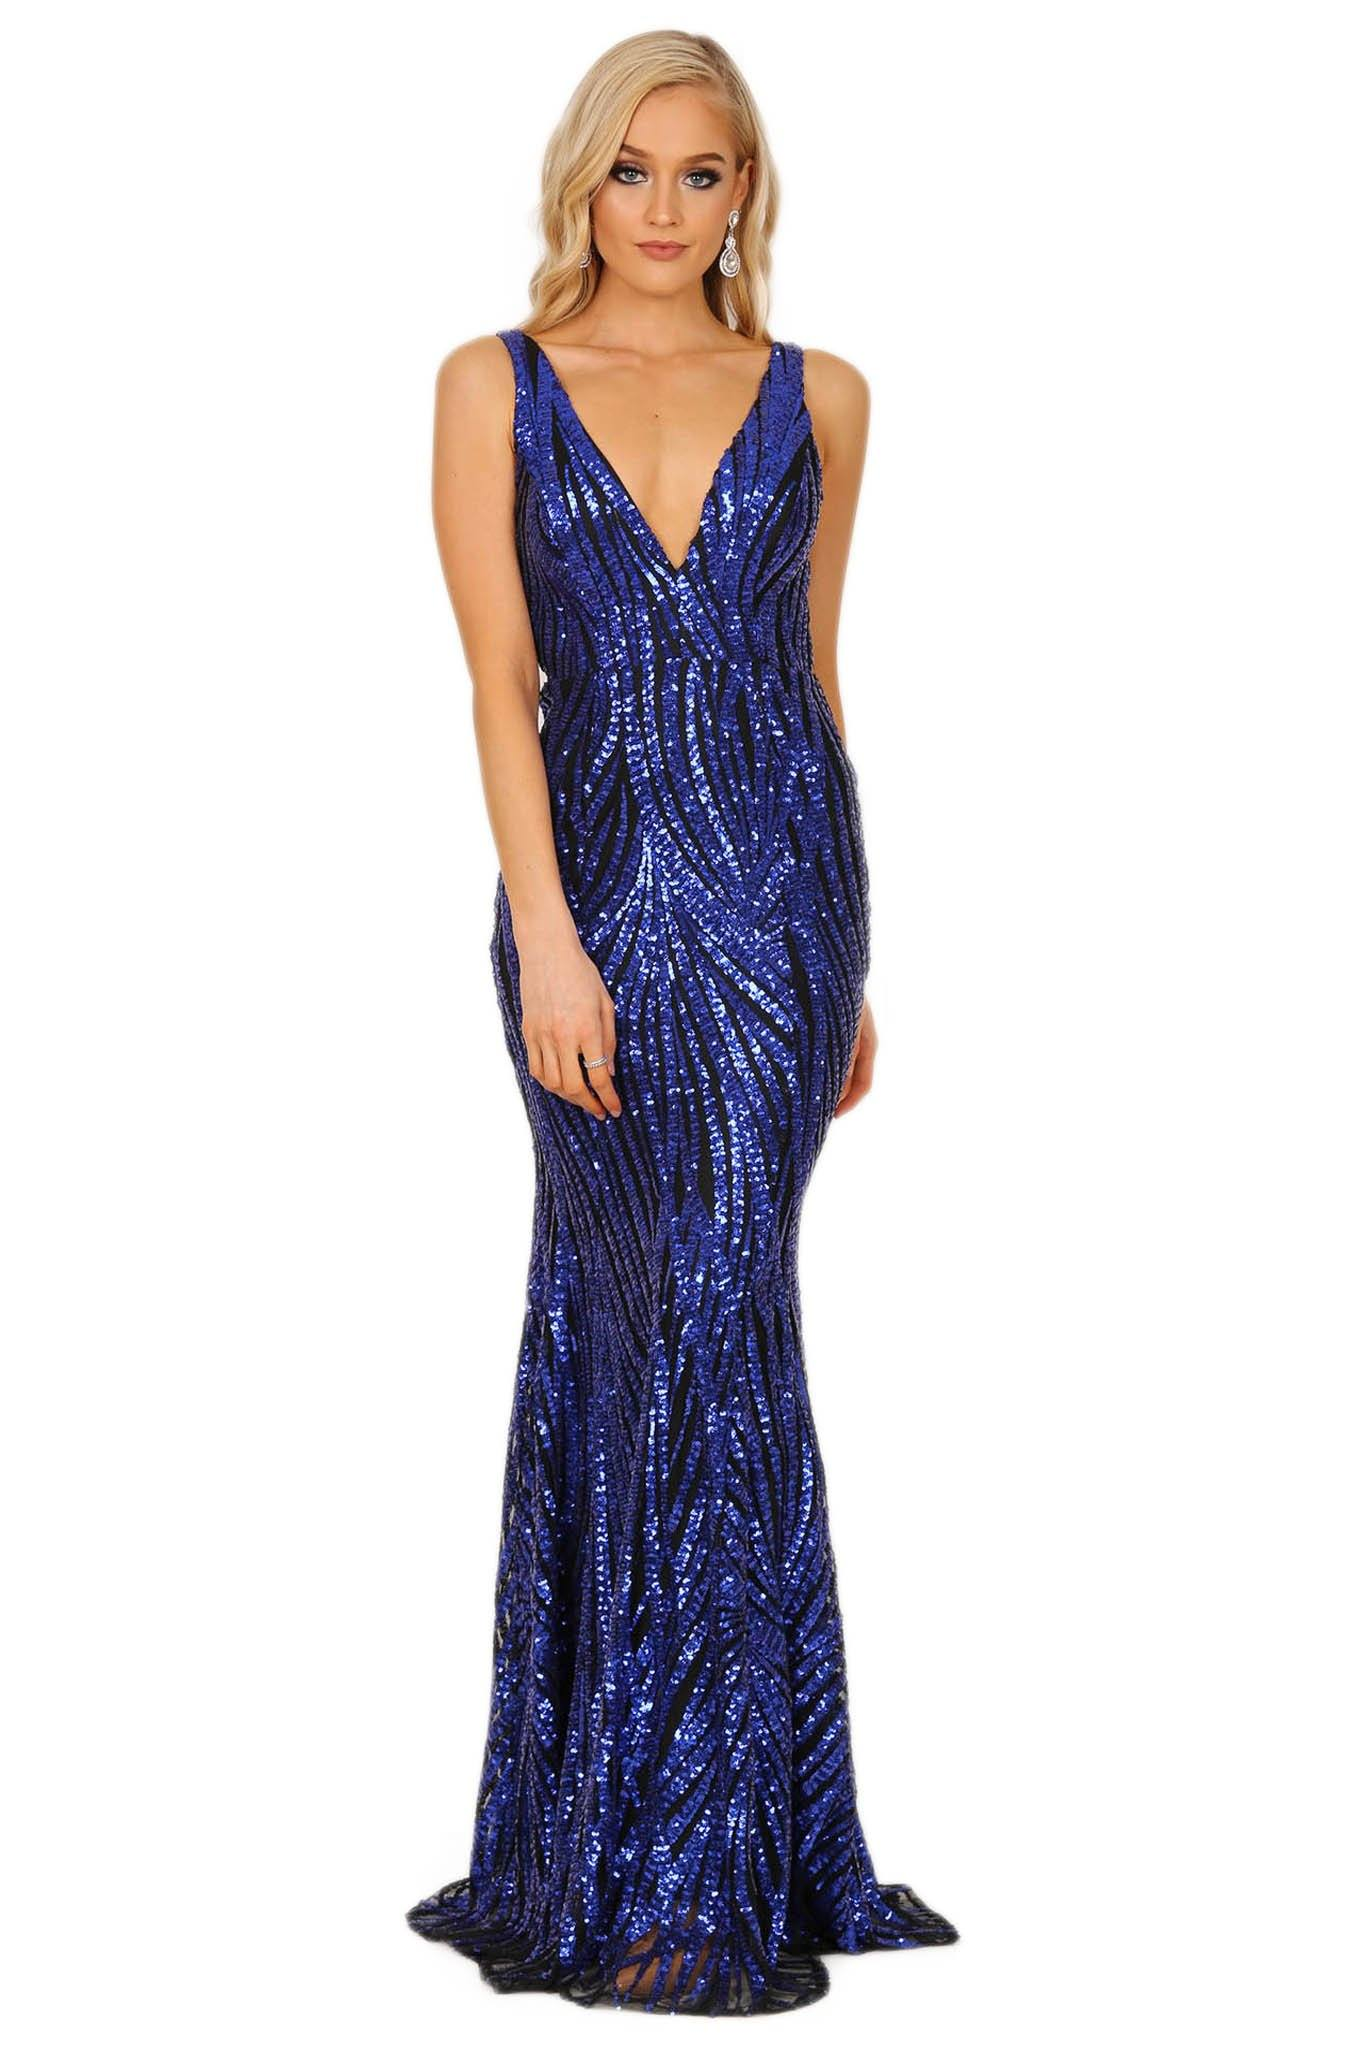 ed2fa9362 Royal Blue Floor Length Formal Sequin Gown with Wavy Stripes of Embroidered Royal  Blue Sequins on